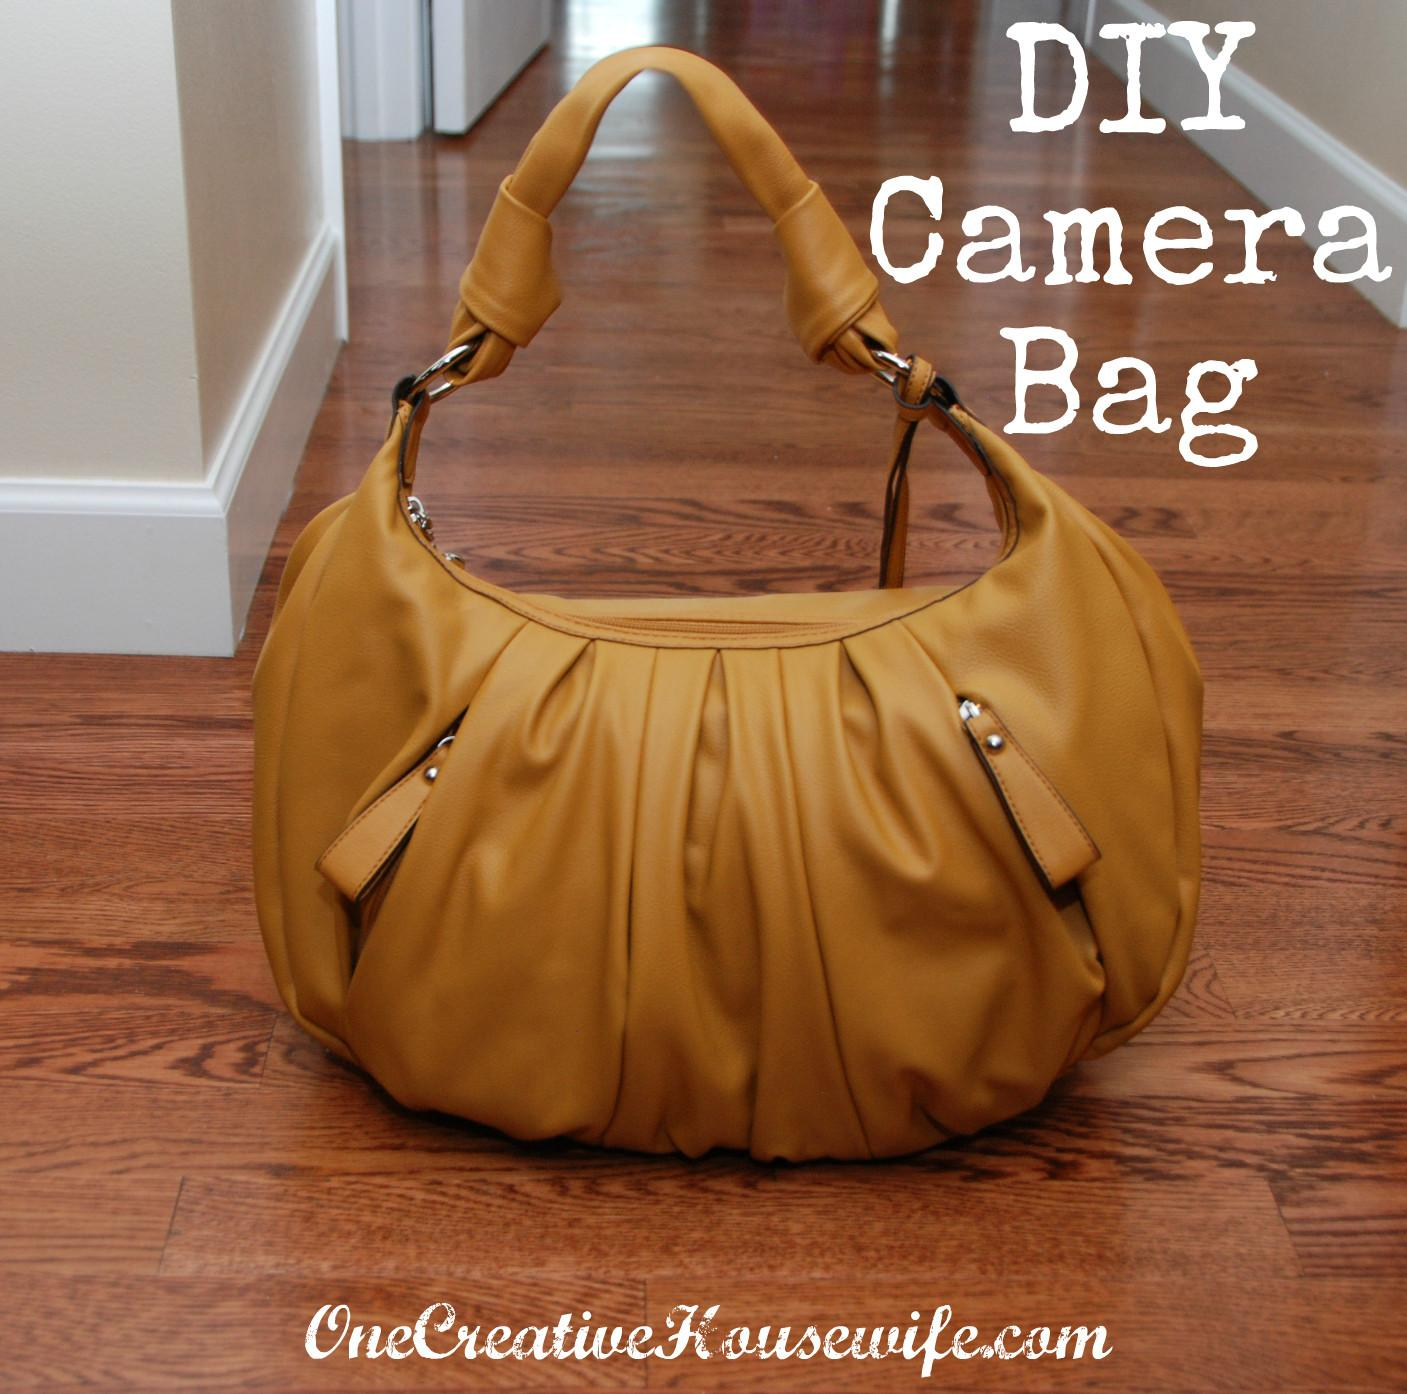 One Creative Housewife Diy Camera Bag